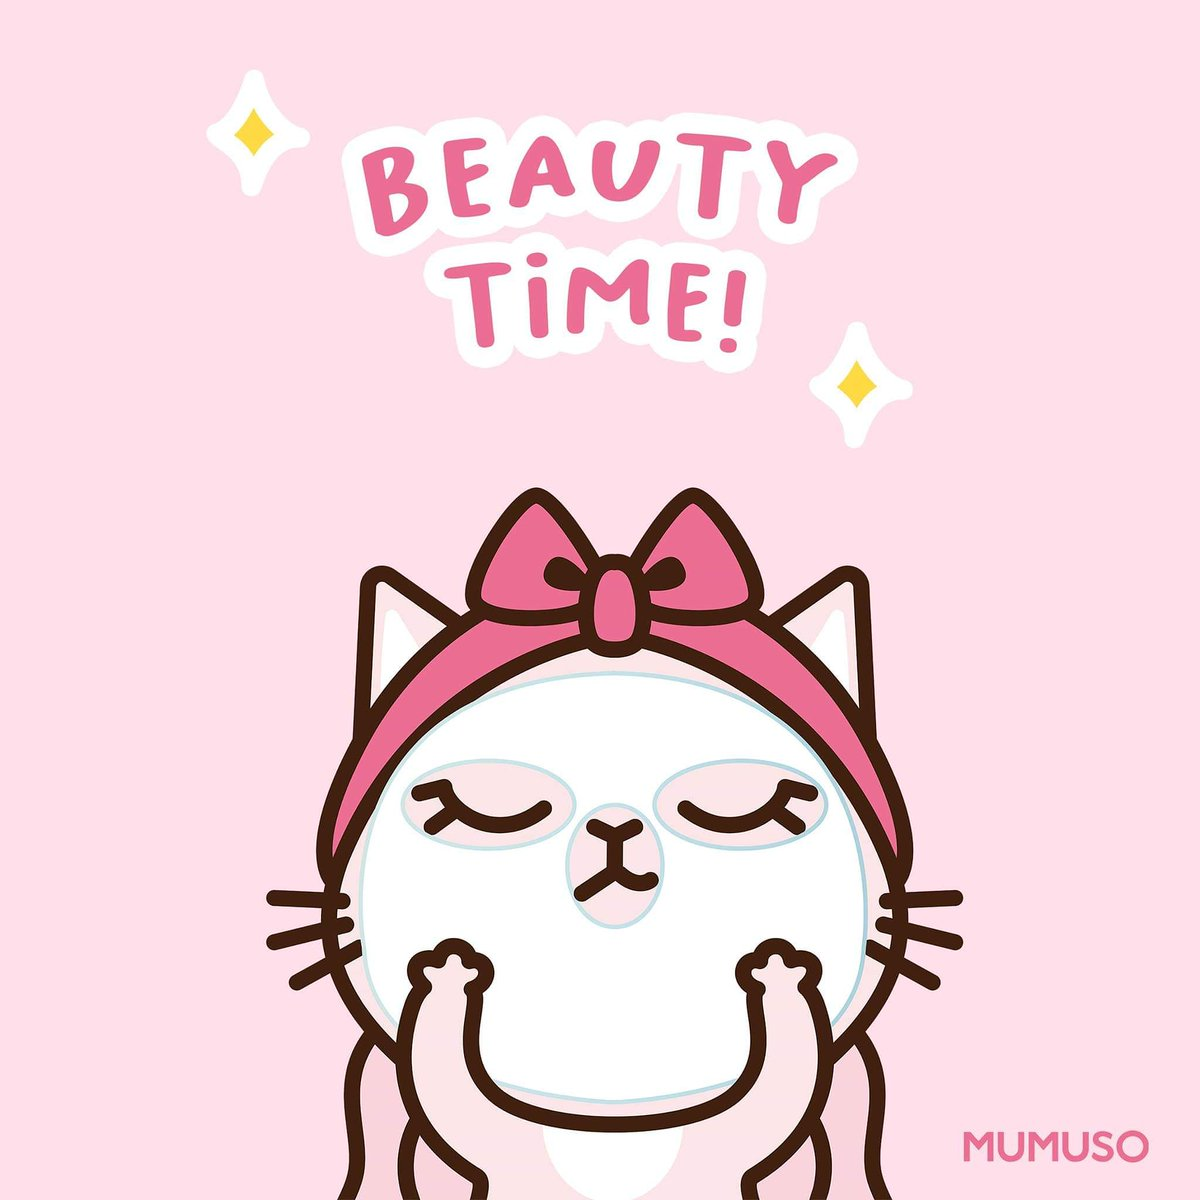 Stressed Monday? Put on your favorite #Mumuso face masks and chill out! 😘